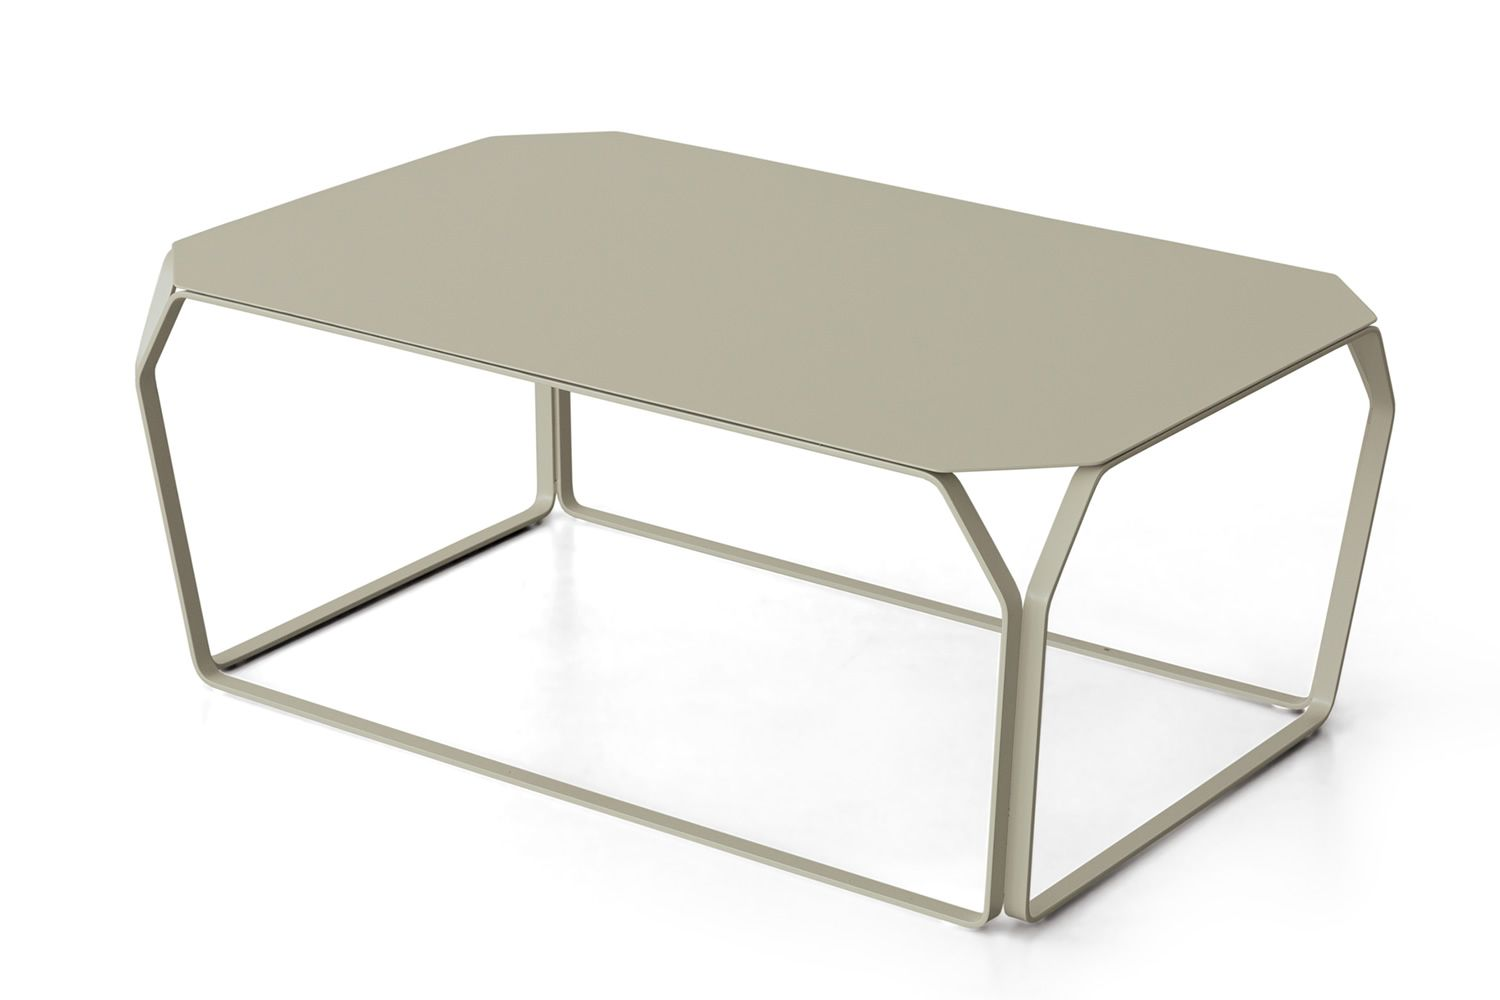 Small rectangular table in lacquered metal, color light gray